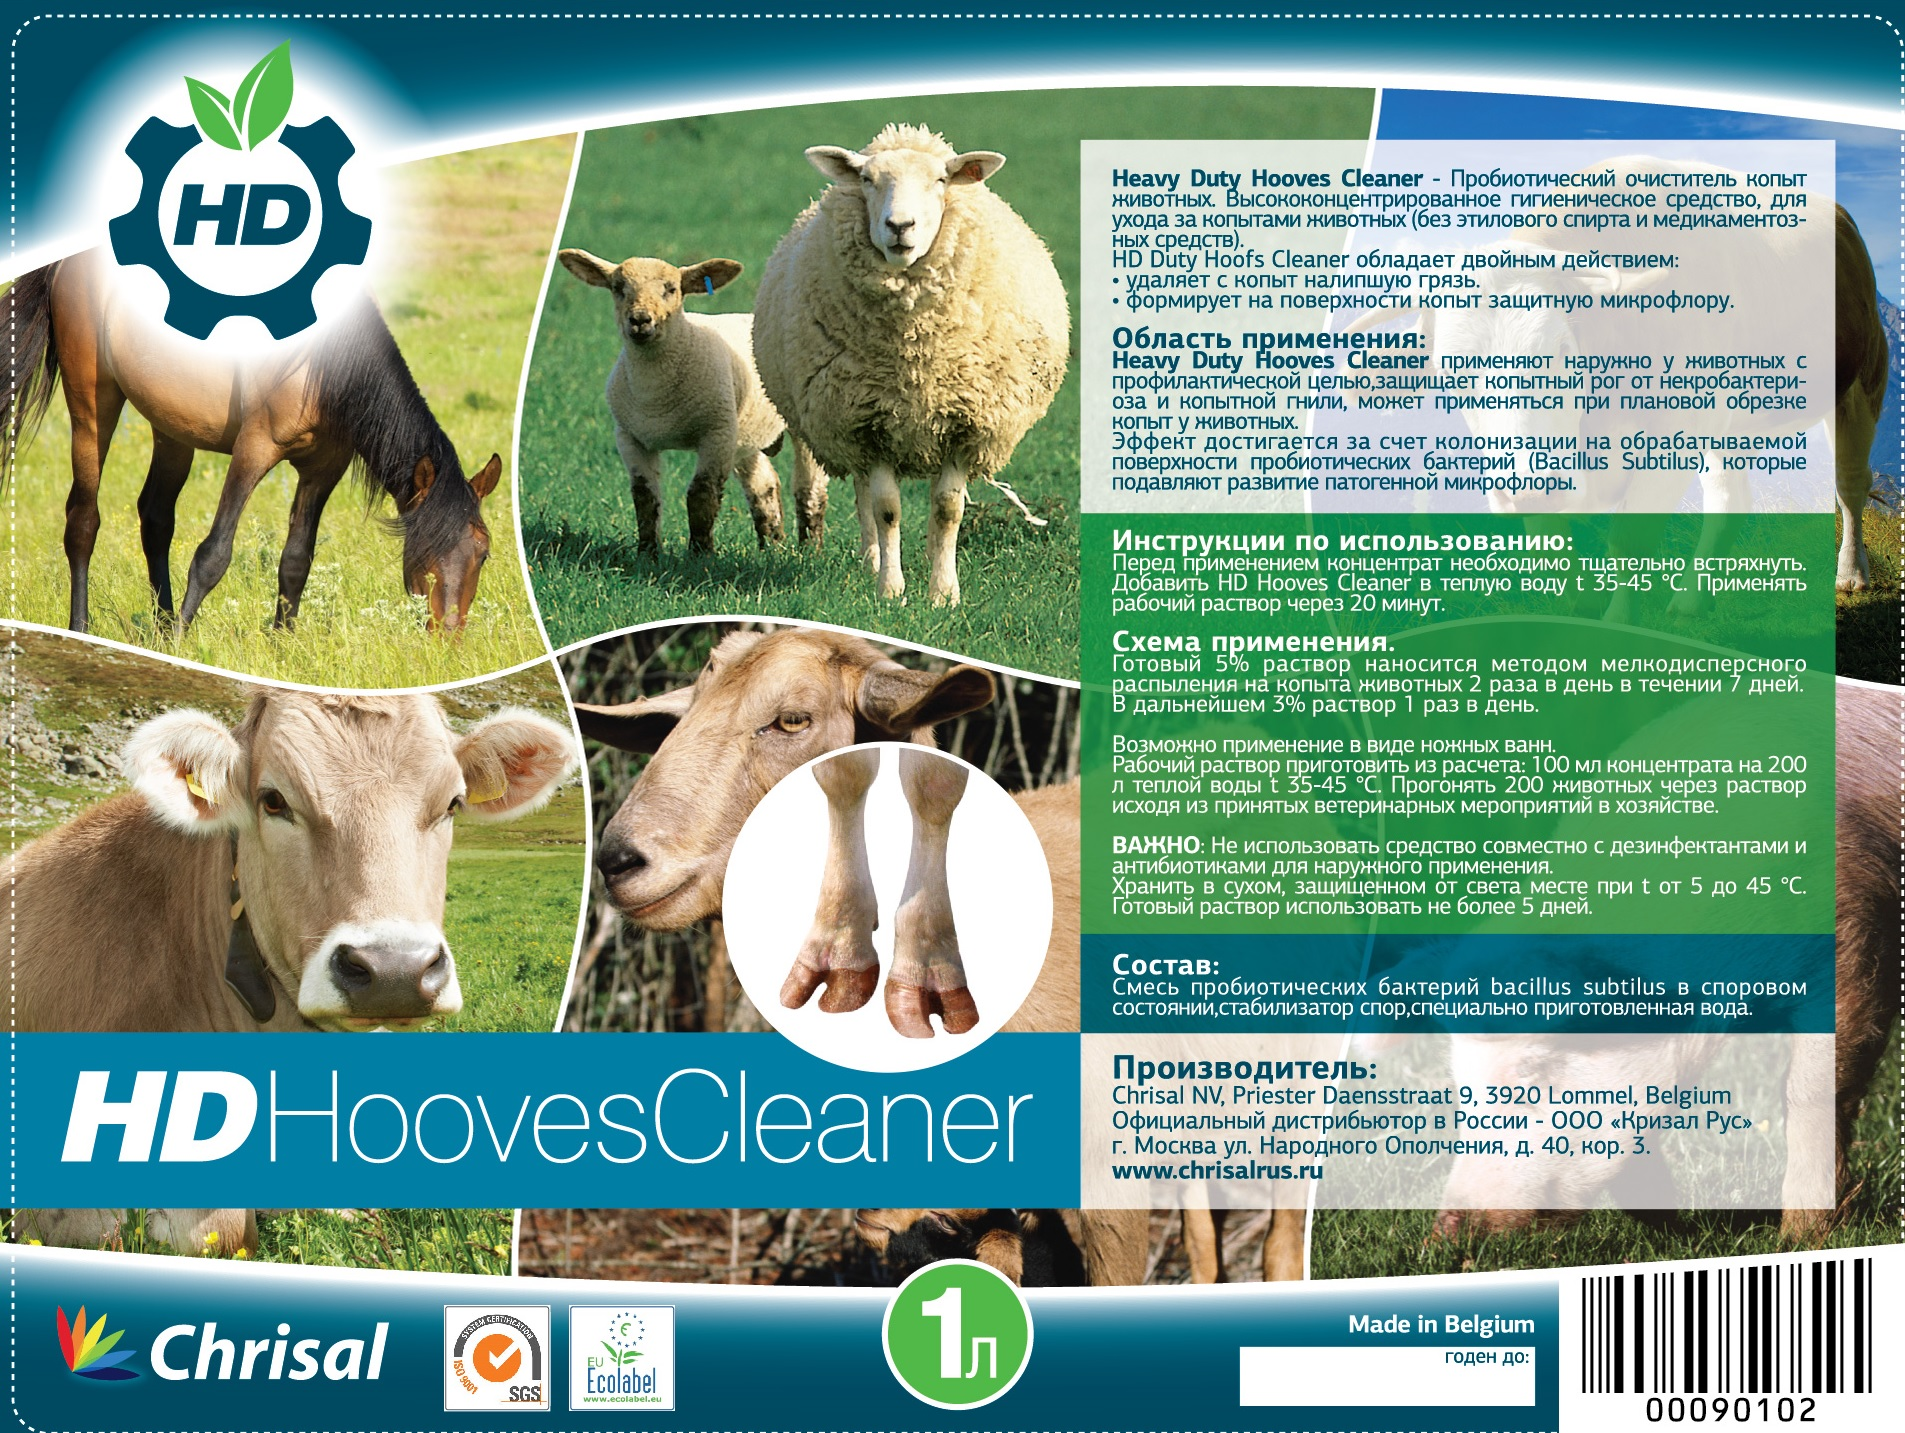 HD Hooves Cleaner